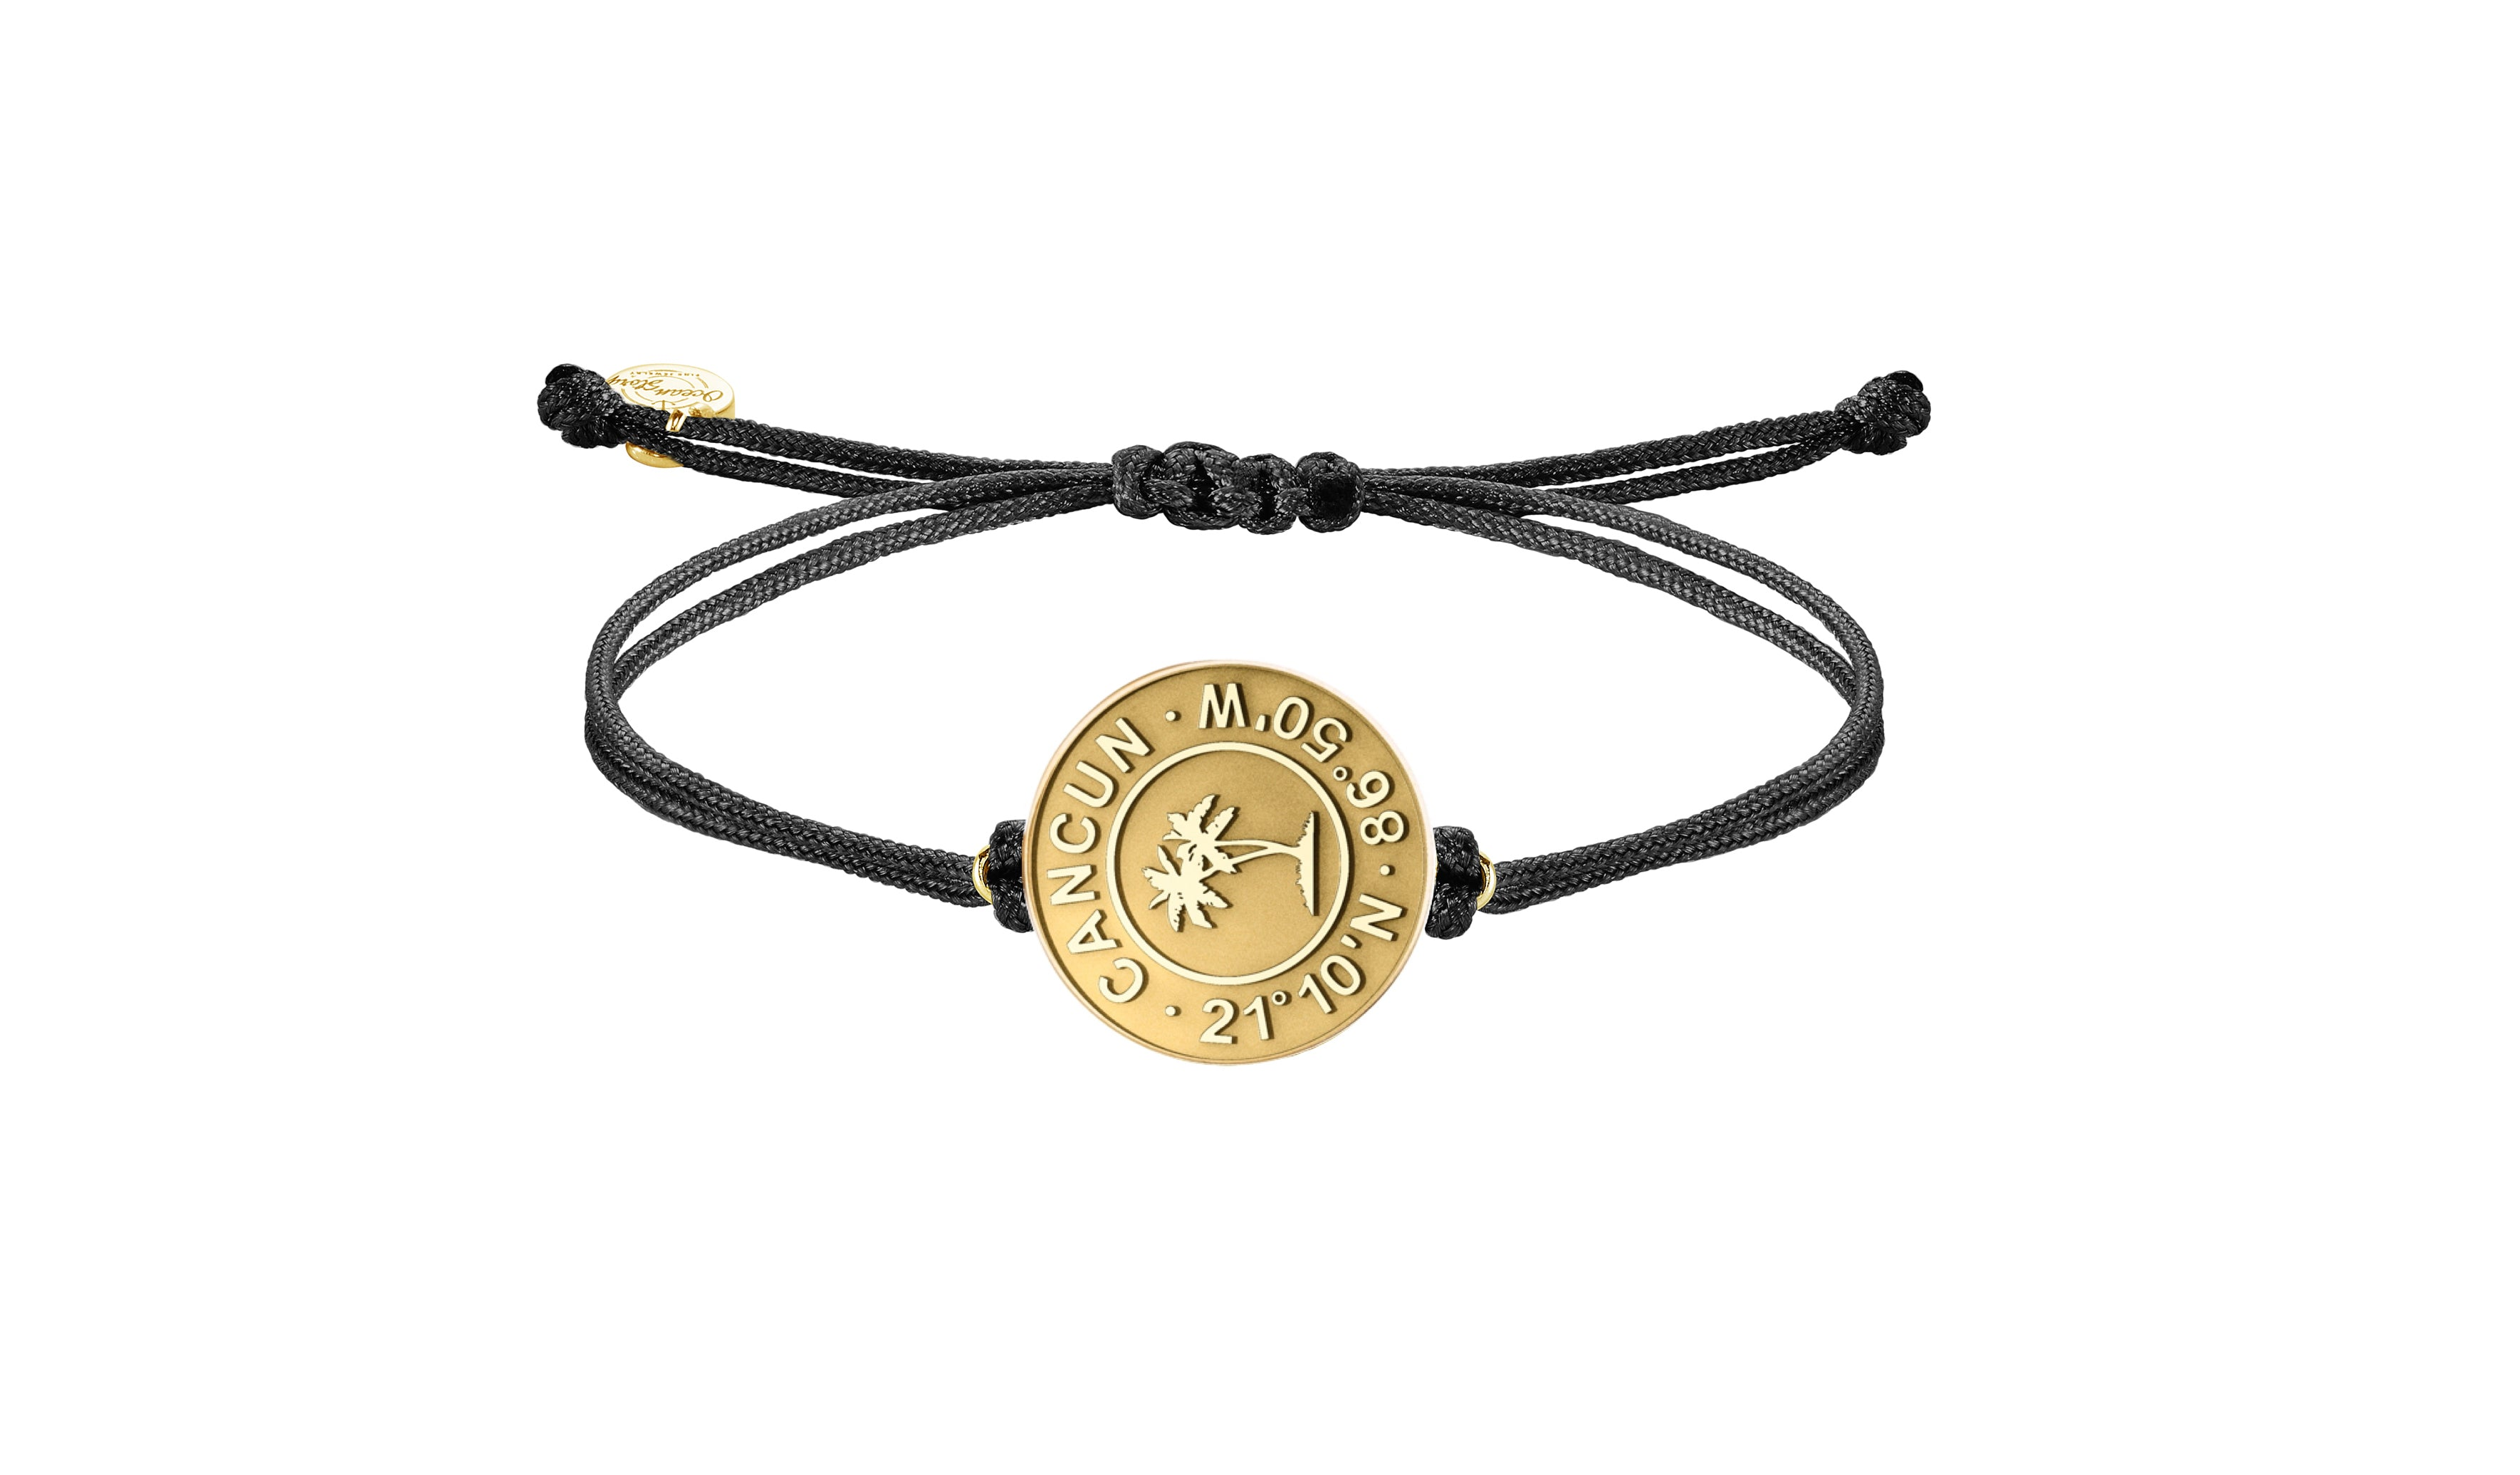 Goldenes Cancun Münz Armband mit Stretch